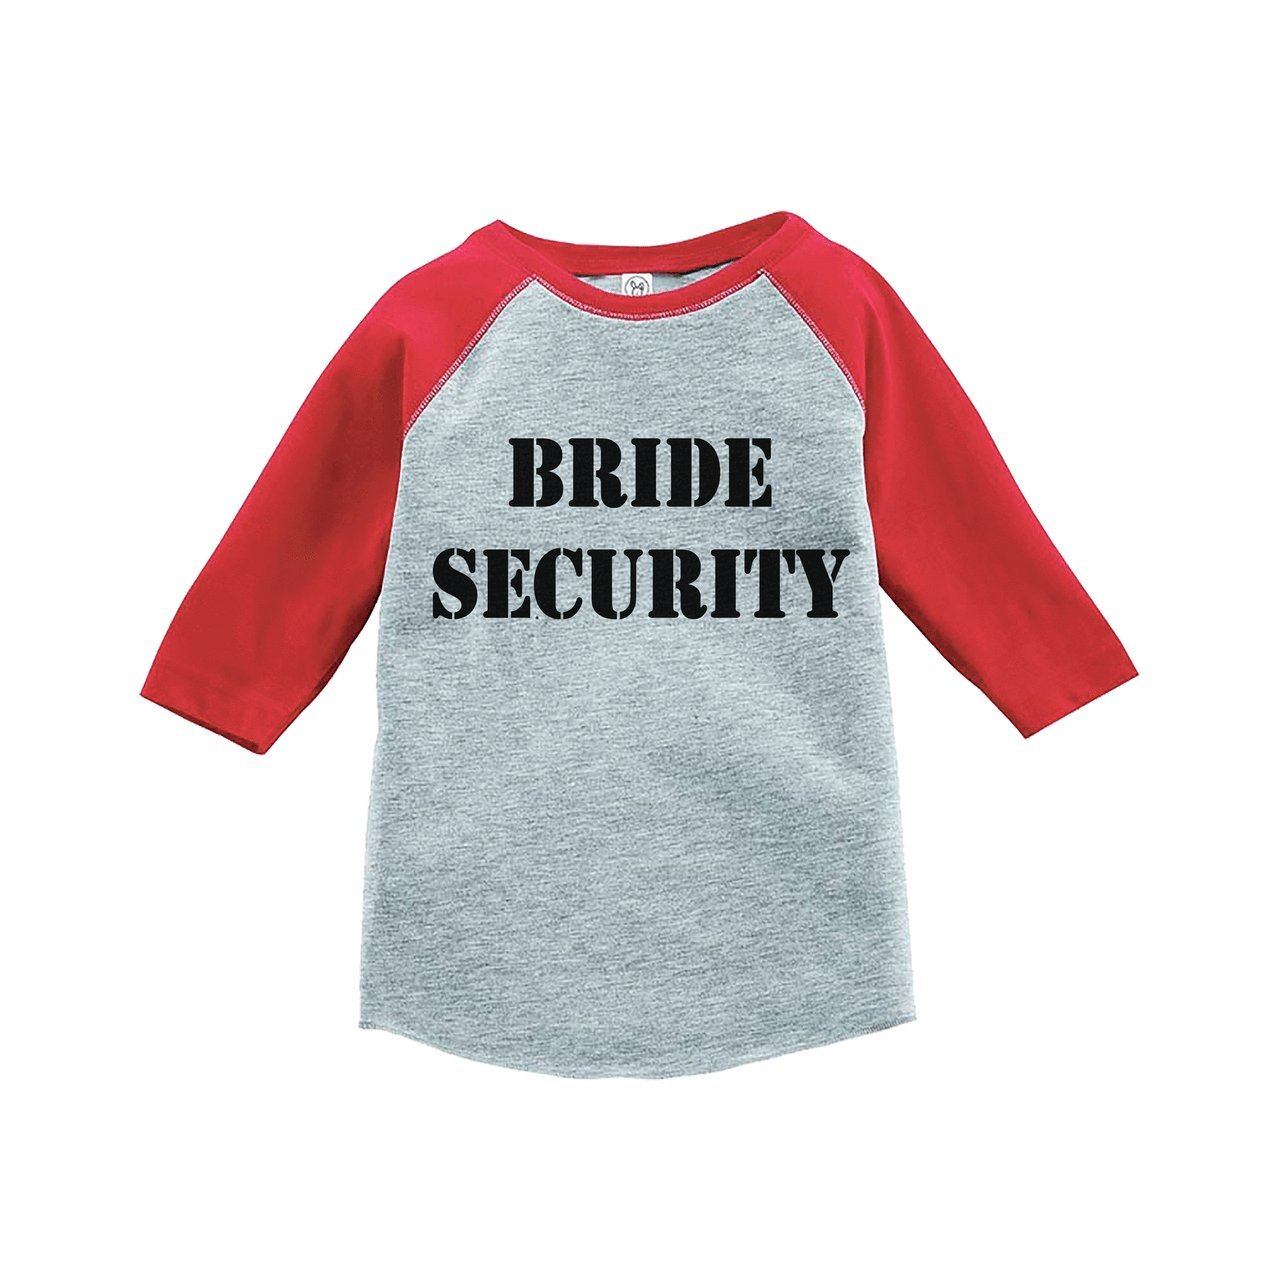 Custom Party Shop Youth Boy's Bride Security Wedding Red Raglan Large